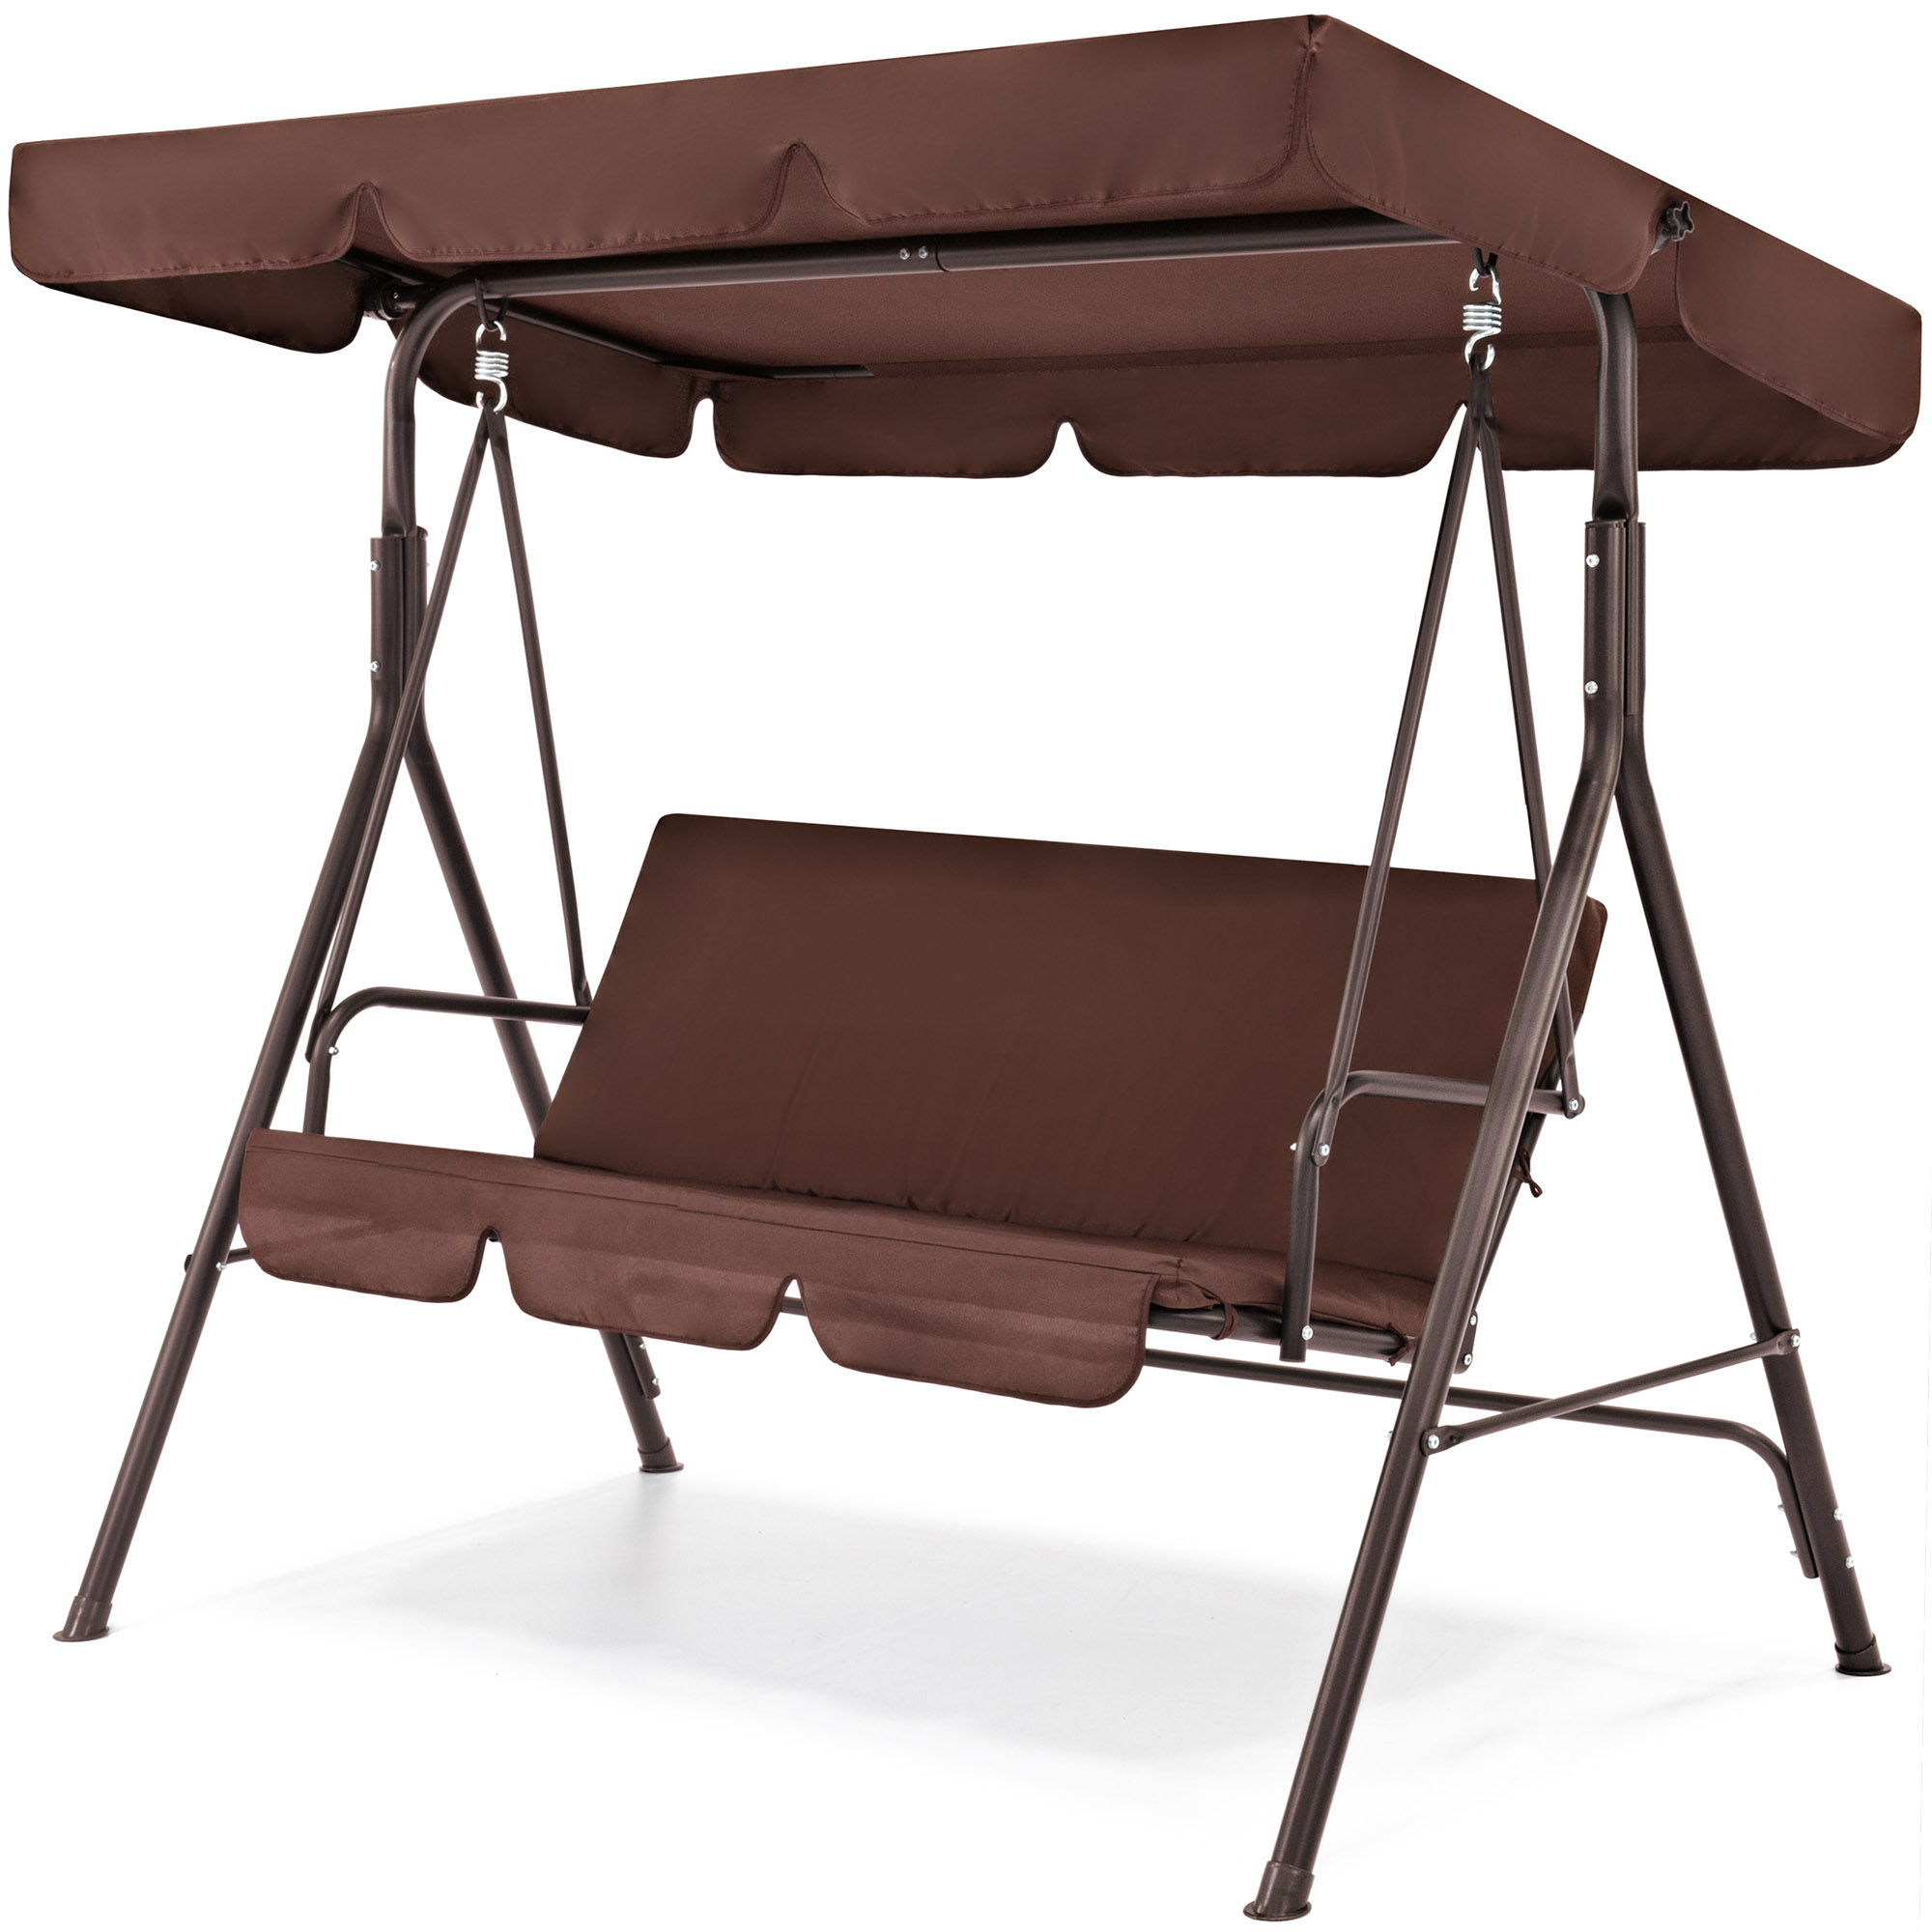 Popular Outdoor Swing Glider Chairs With Powder Coated Steel Frame For Best Choice Products 2 Person Outdoor Large Convertible Canopy Swing Glider Lounge Chair W/ Removable Cushions Brown (View 22 of 25)